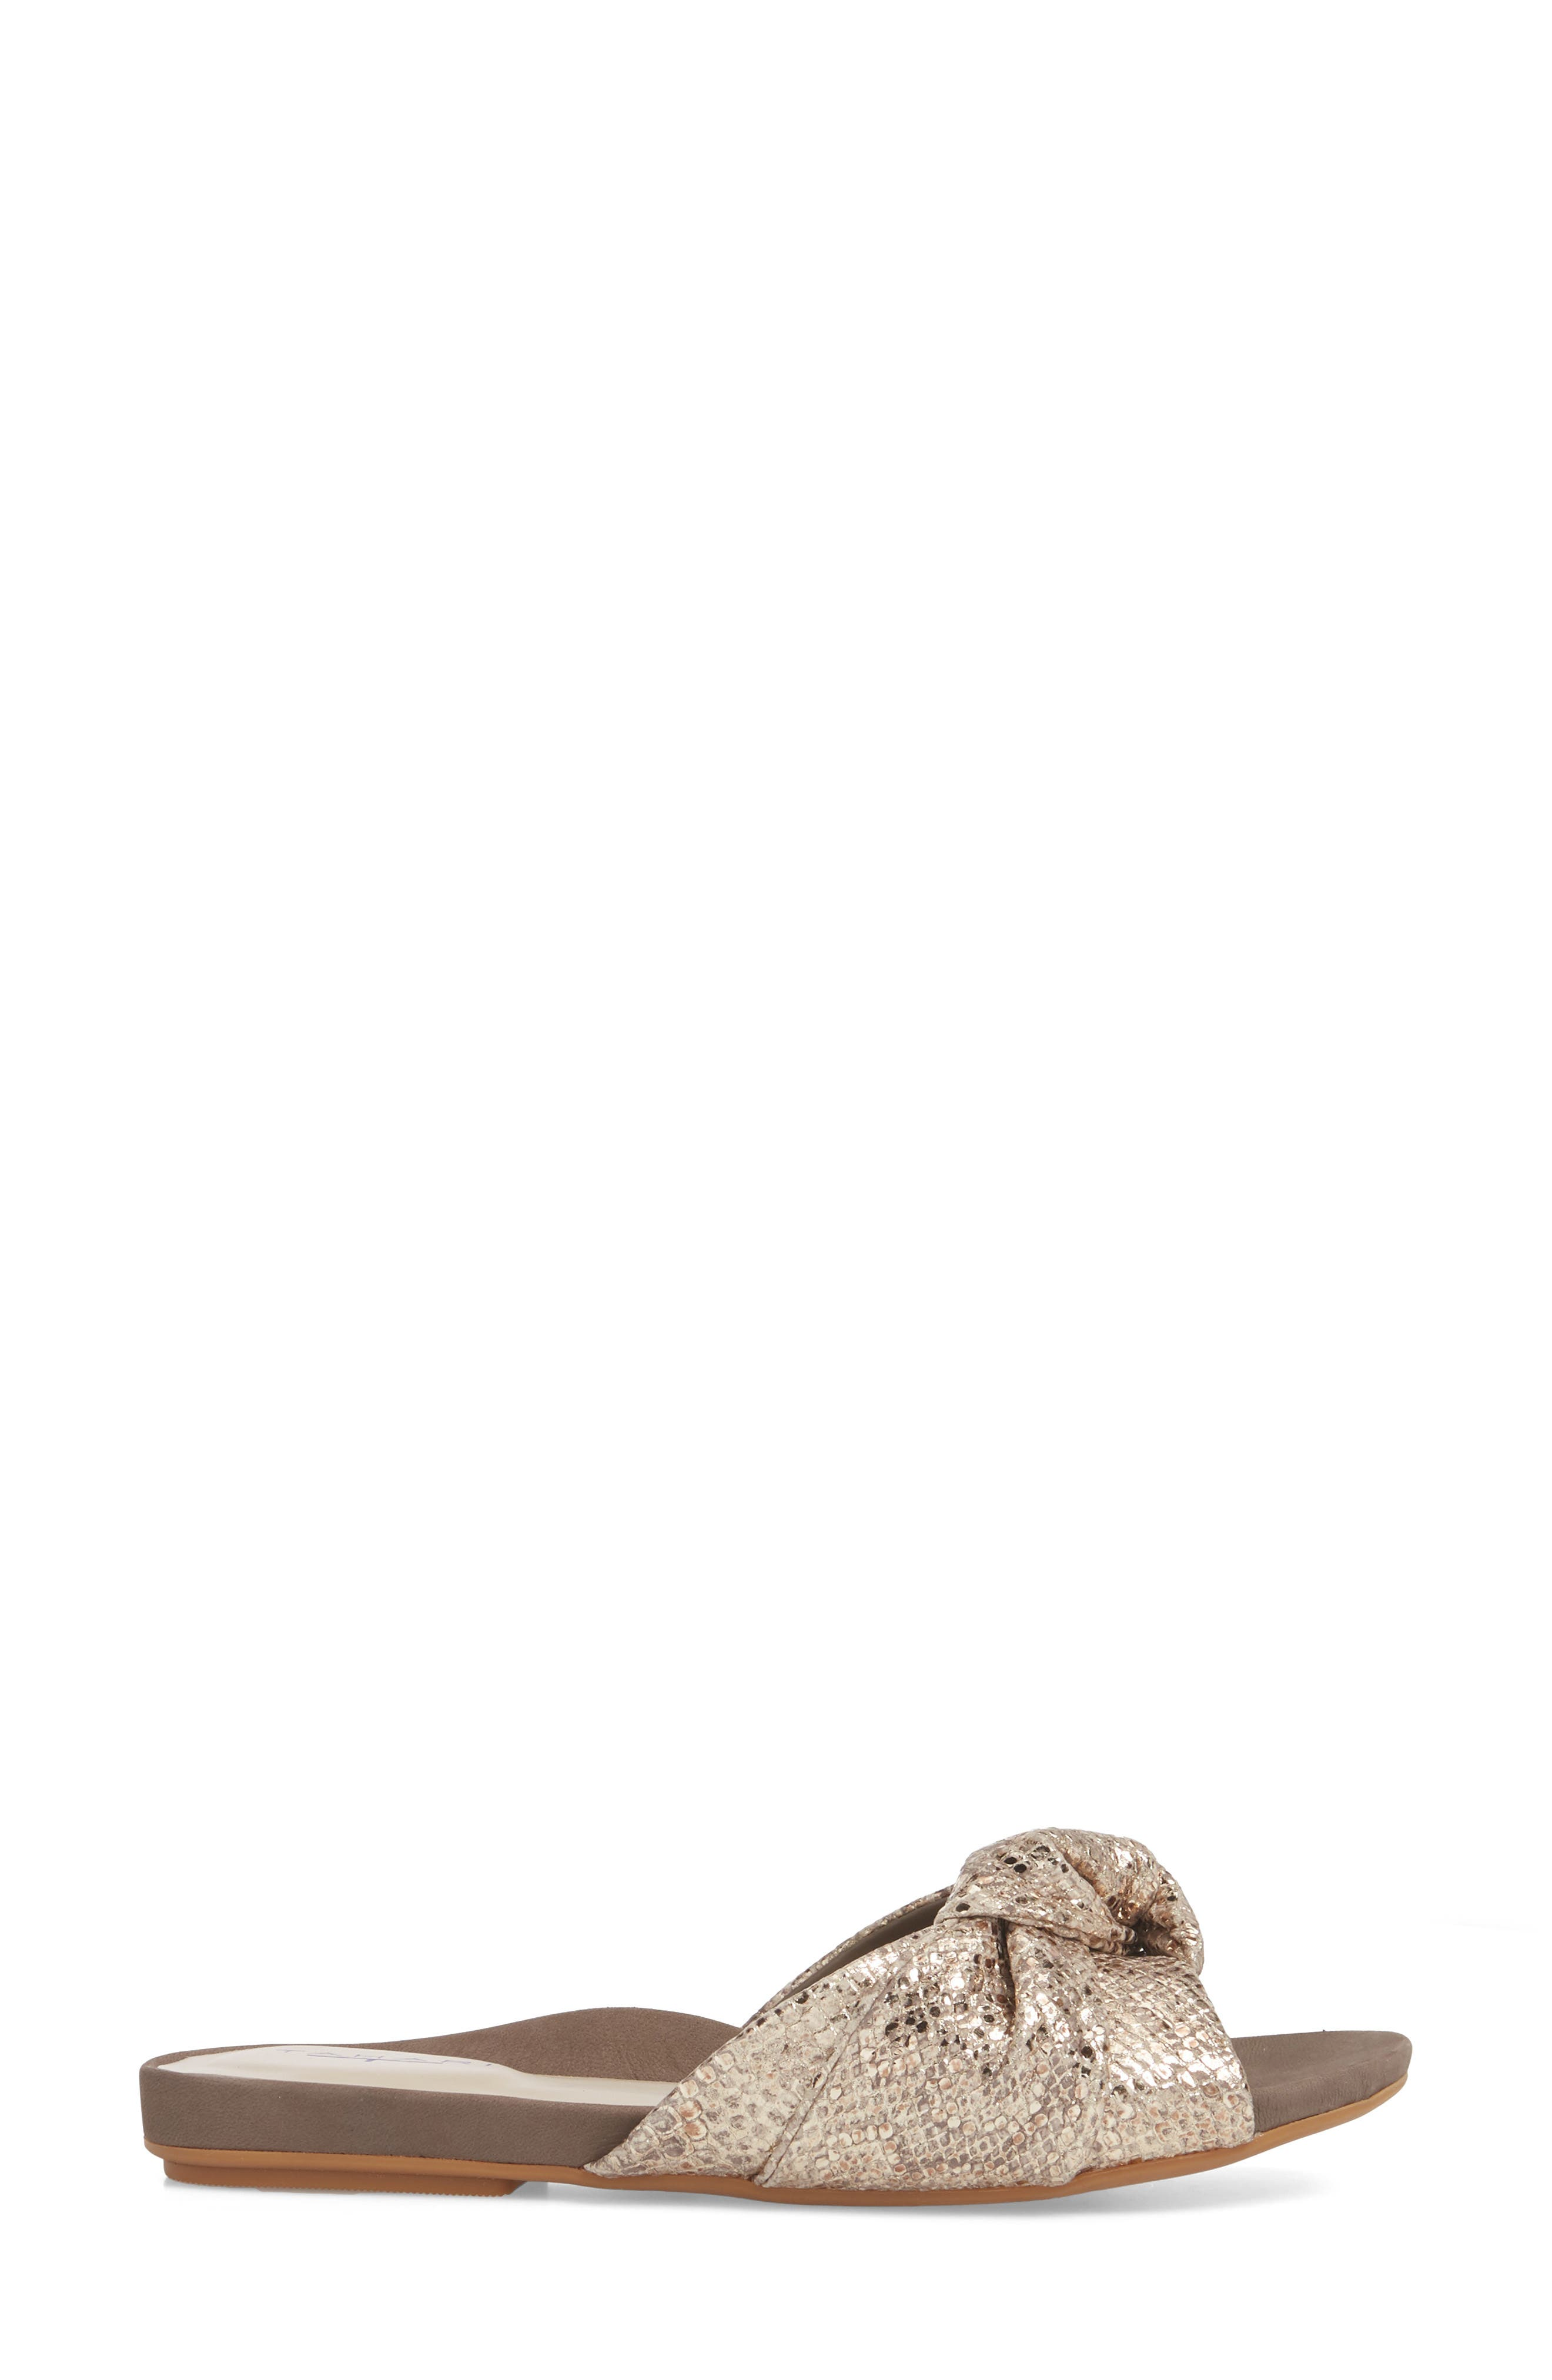 Lauren Slide Sandal,                             Alternate thumbnail 3, color,                             Taupe-Gold Suede